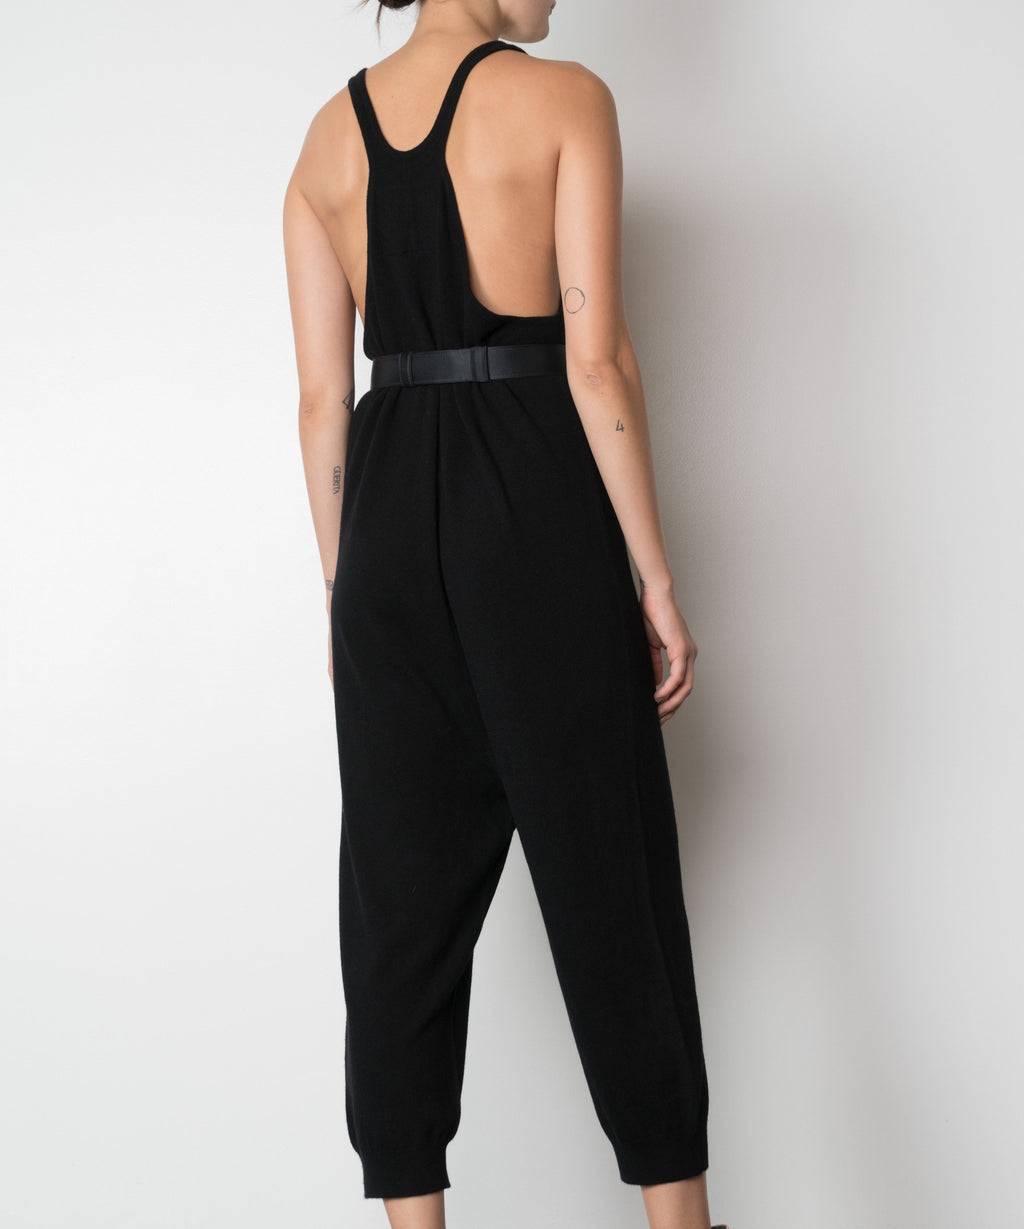 Cheshire Black Cashmere Jumpsuit